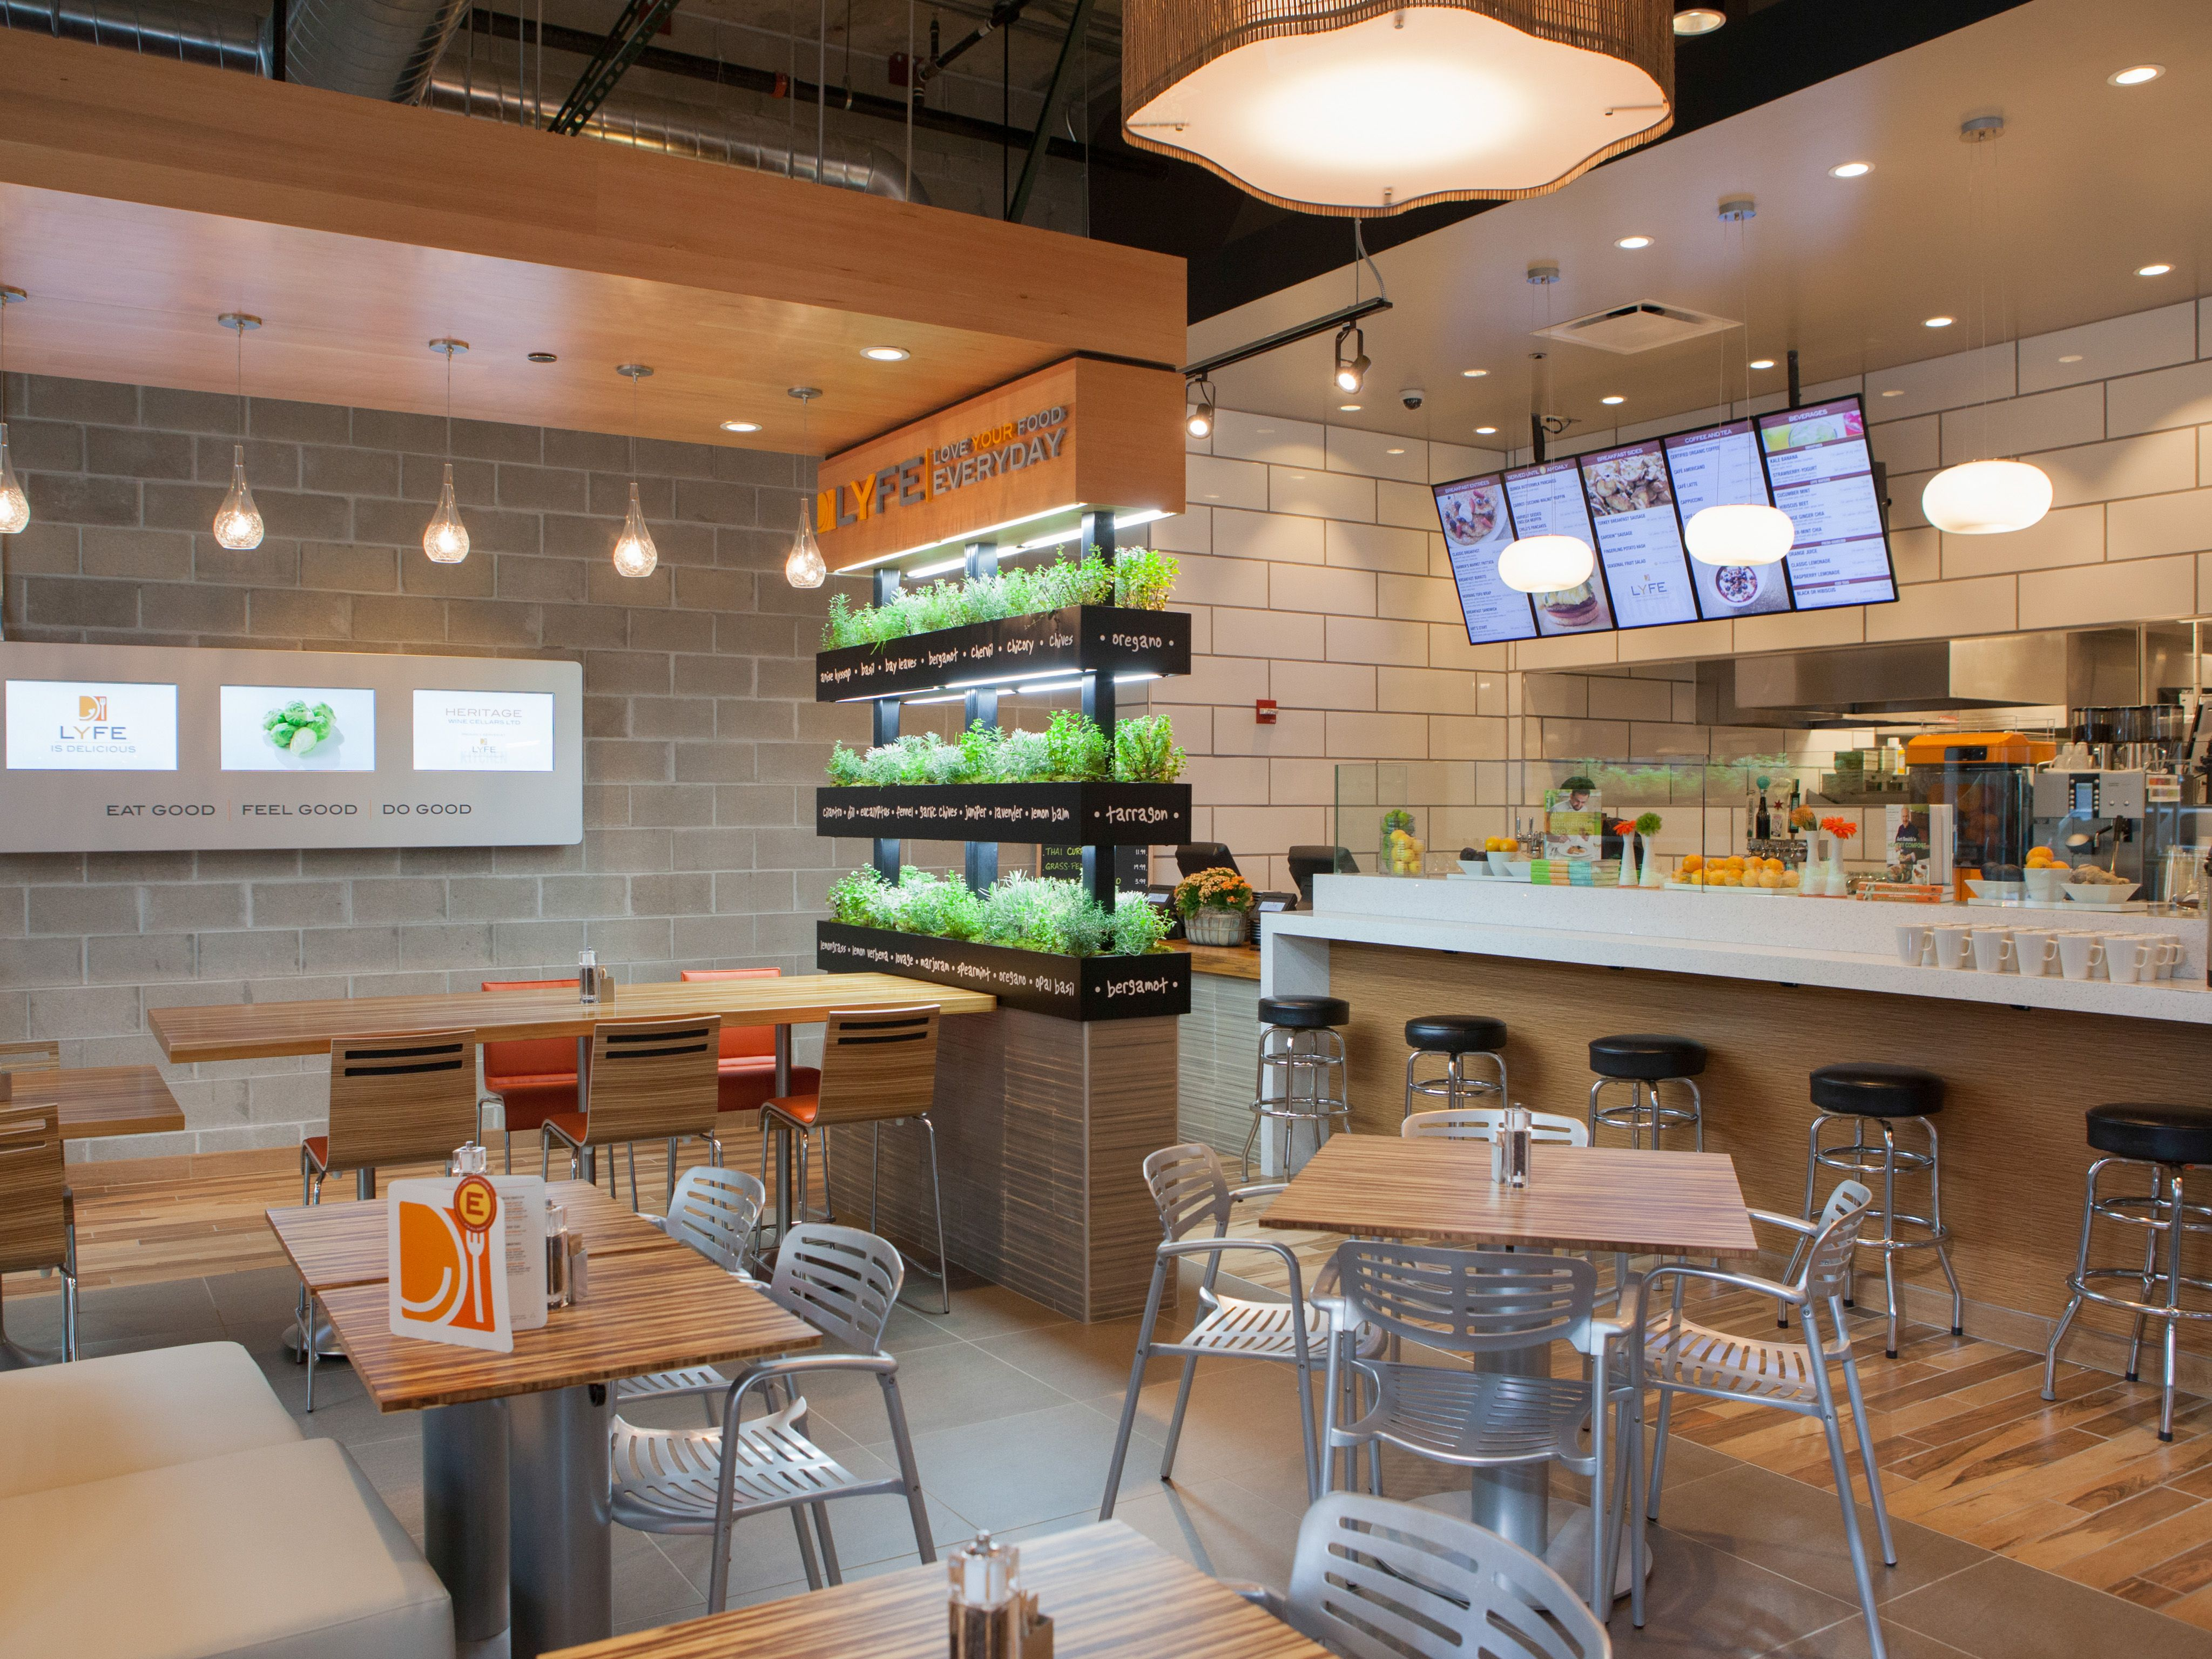 Best healthy fast food restaurant chains network